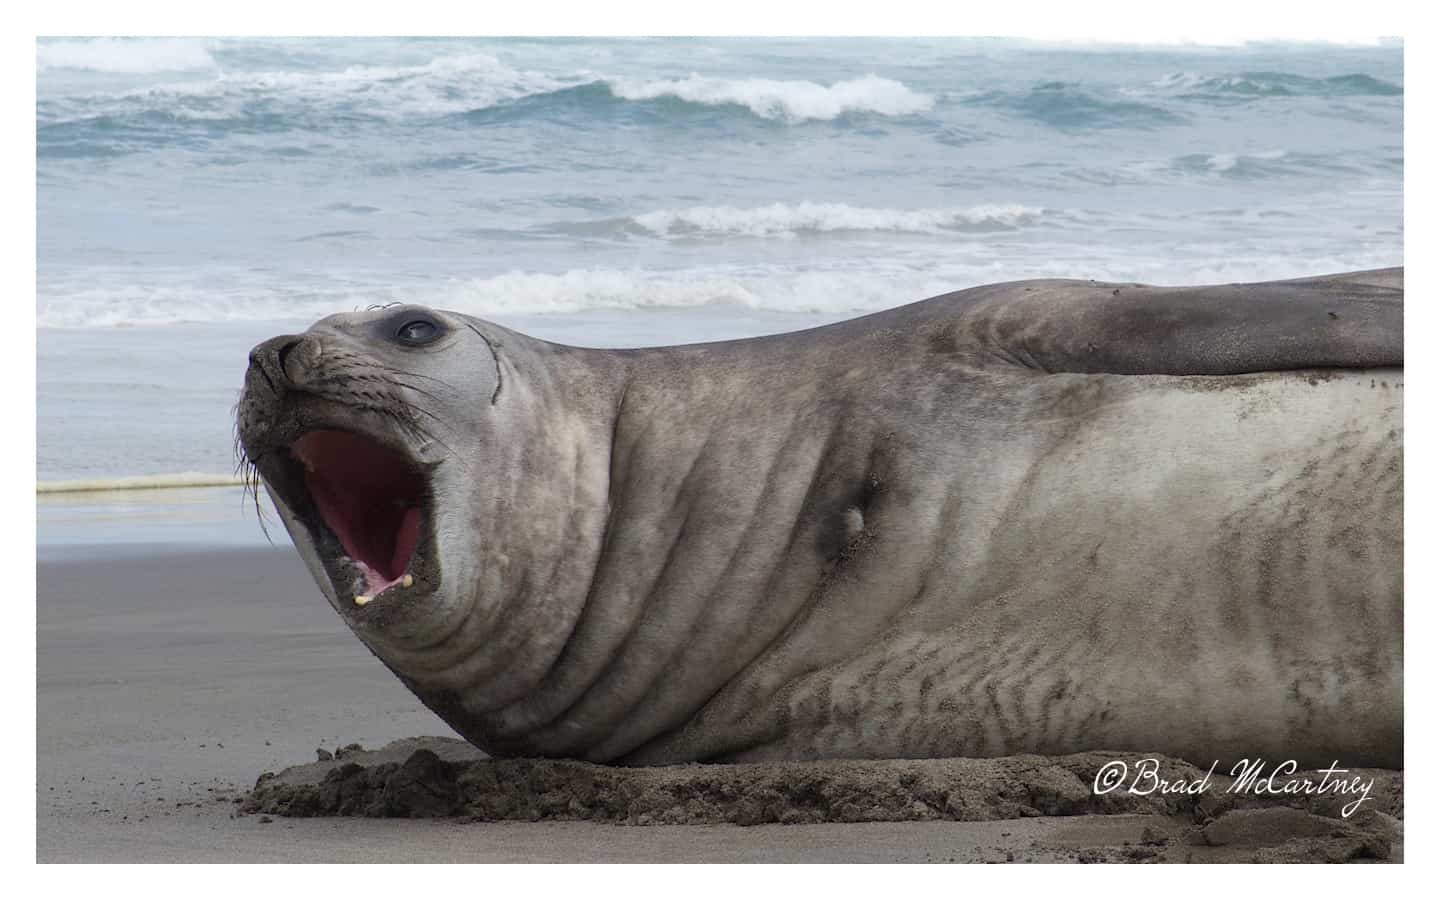 Elephant Seal on the beach in Tasmania Australia